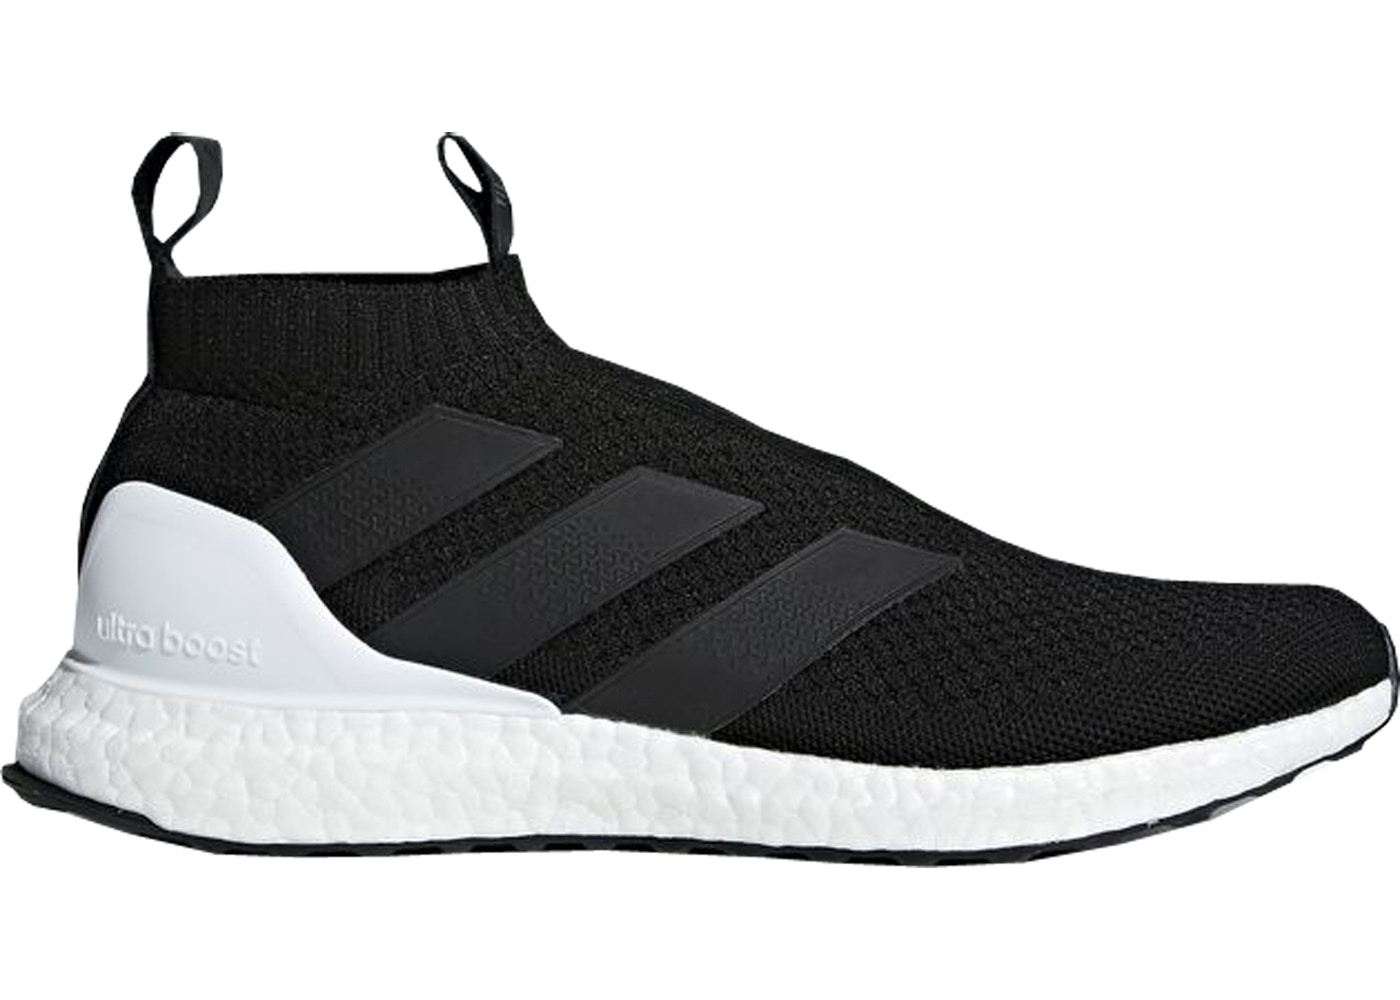 new product ddb1f 5f981 adidas Ultra Boost Size 10 Shoes - Volatility